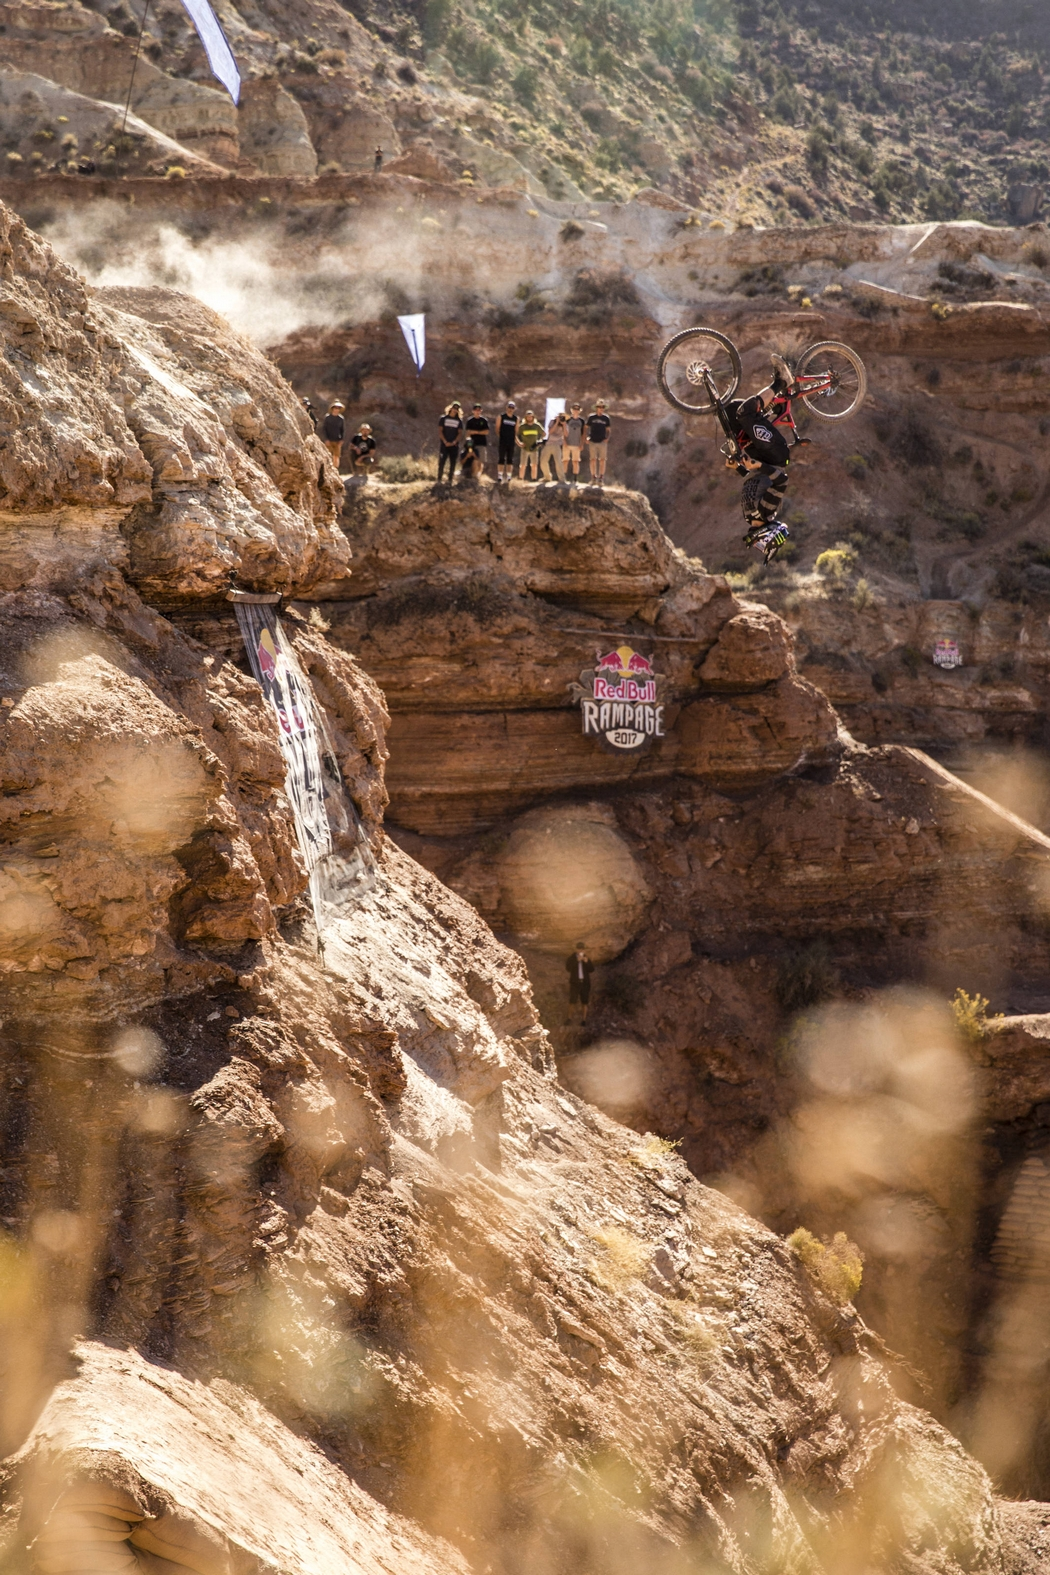 Kurt Sorge wins Red Bull Rampage 2017